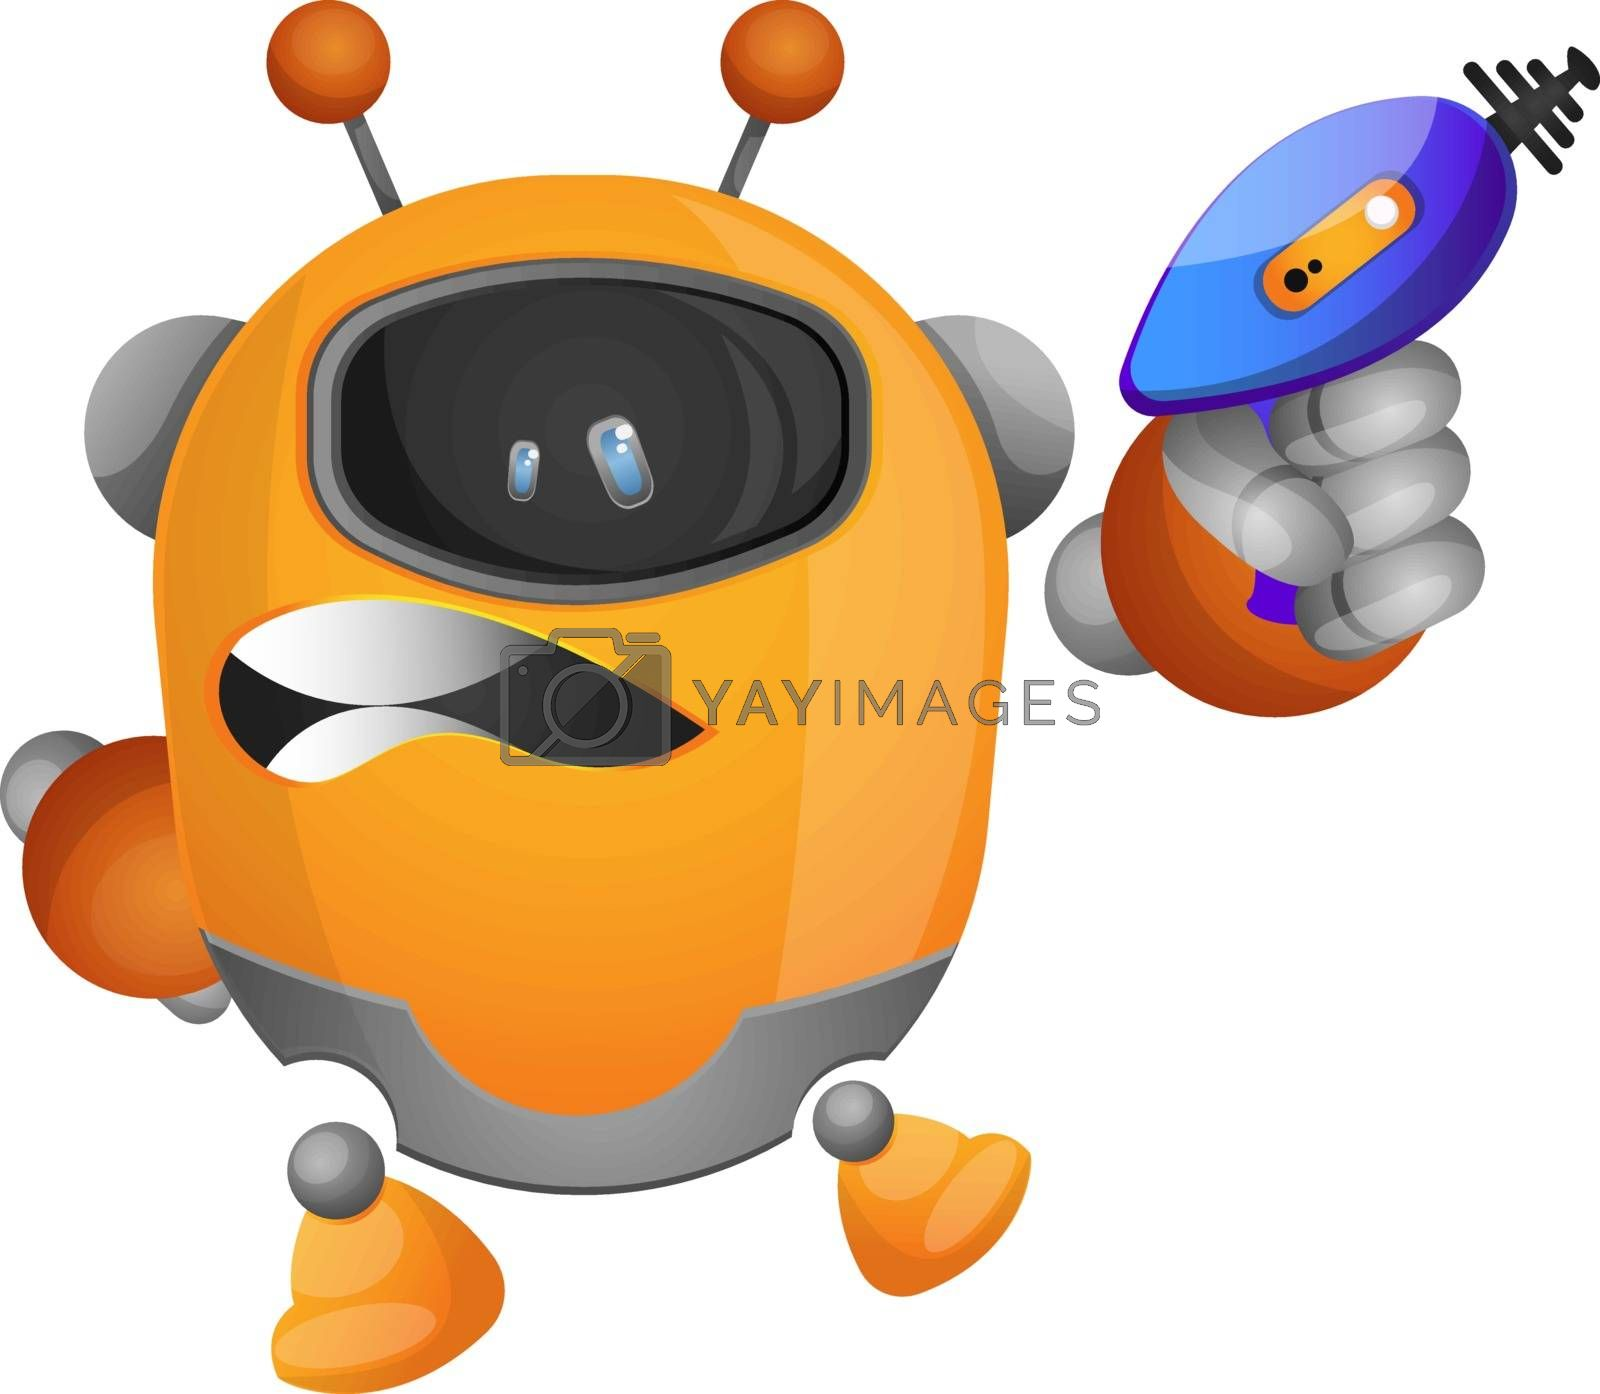 Royalty free image of Robot holding a laser gun illustration vector on white backgroun by Morphart